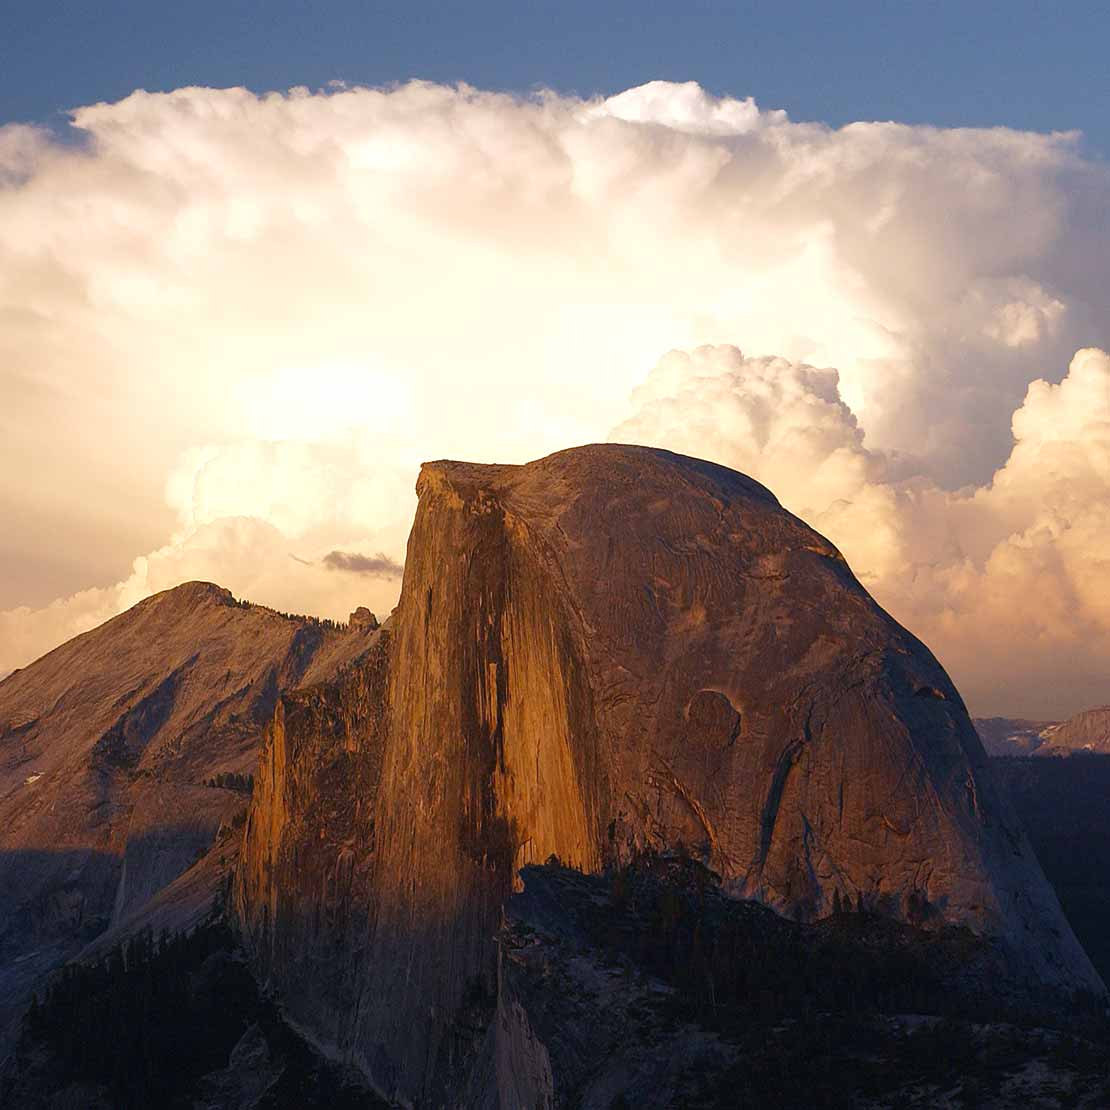 Yosemite National Park Vacations: Yosemite National Park Tours With OARS